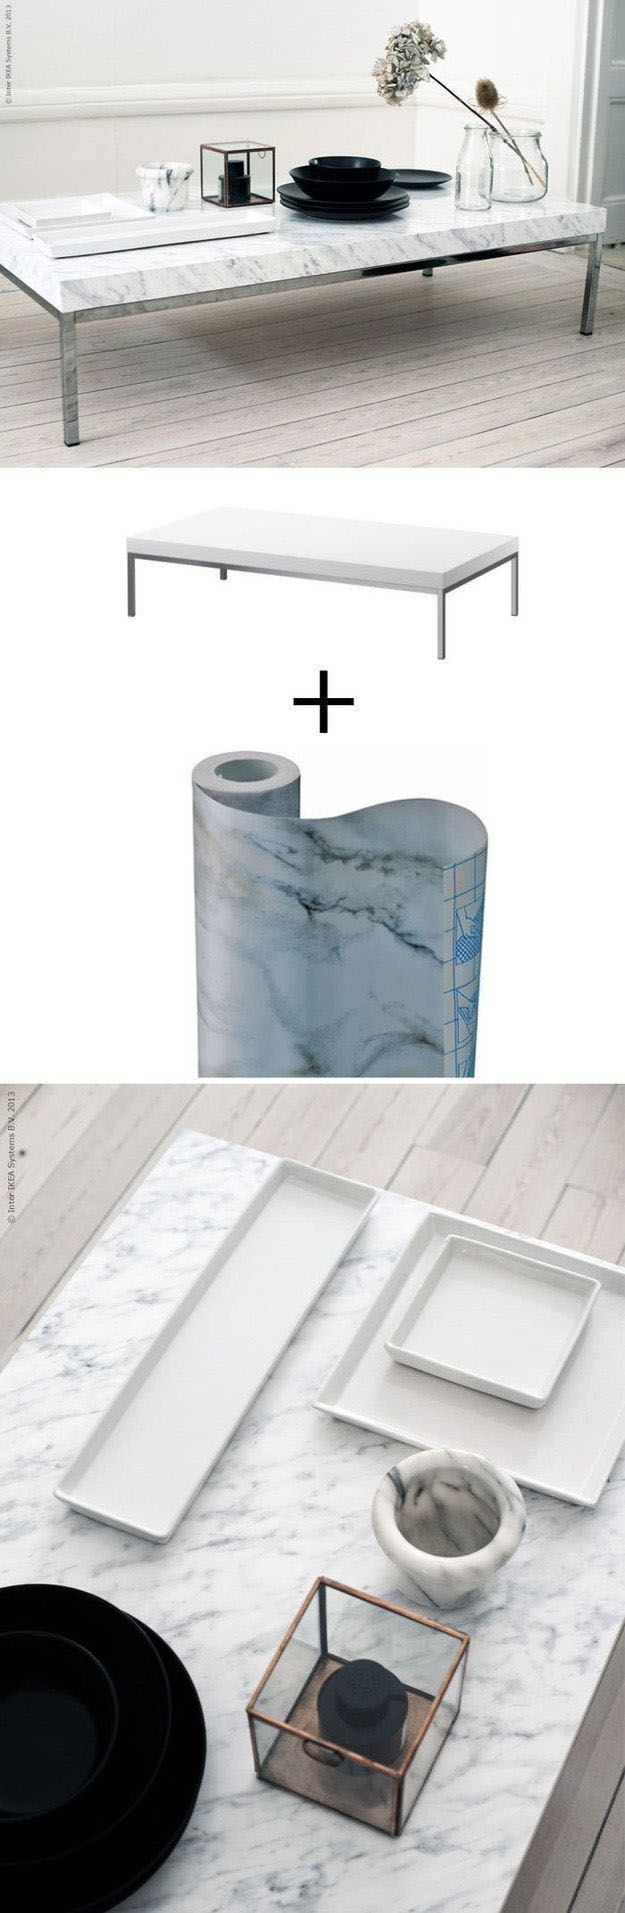 DIY home decor on a budget | Simple furniture projects | Faux Marble DIY Coffee … #an #easy #coffee #marble #mobile projects #culture